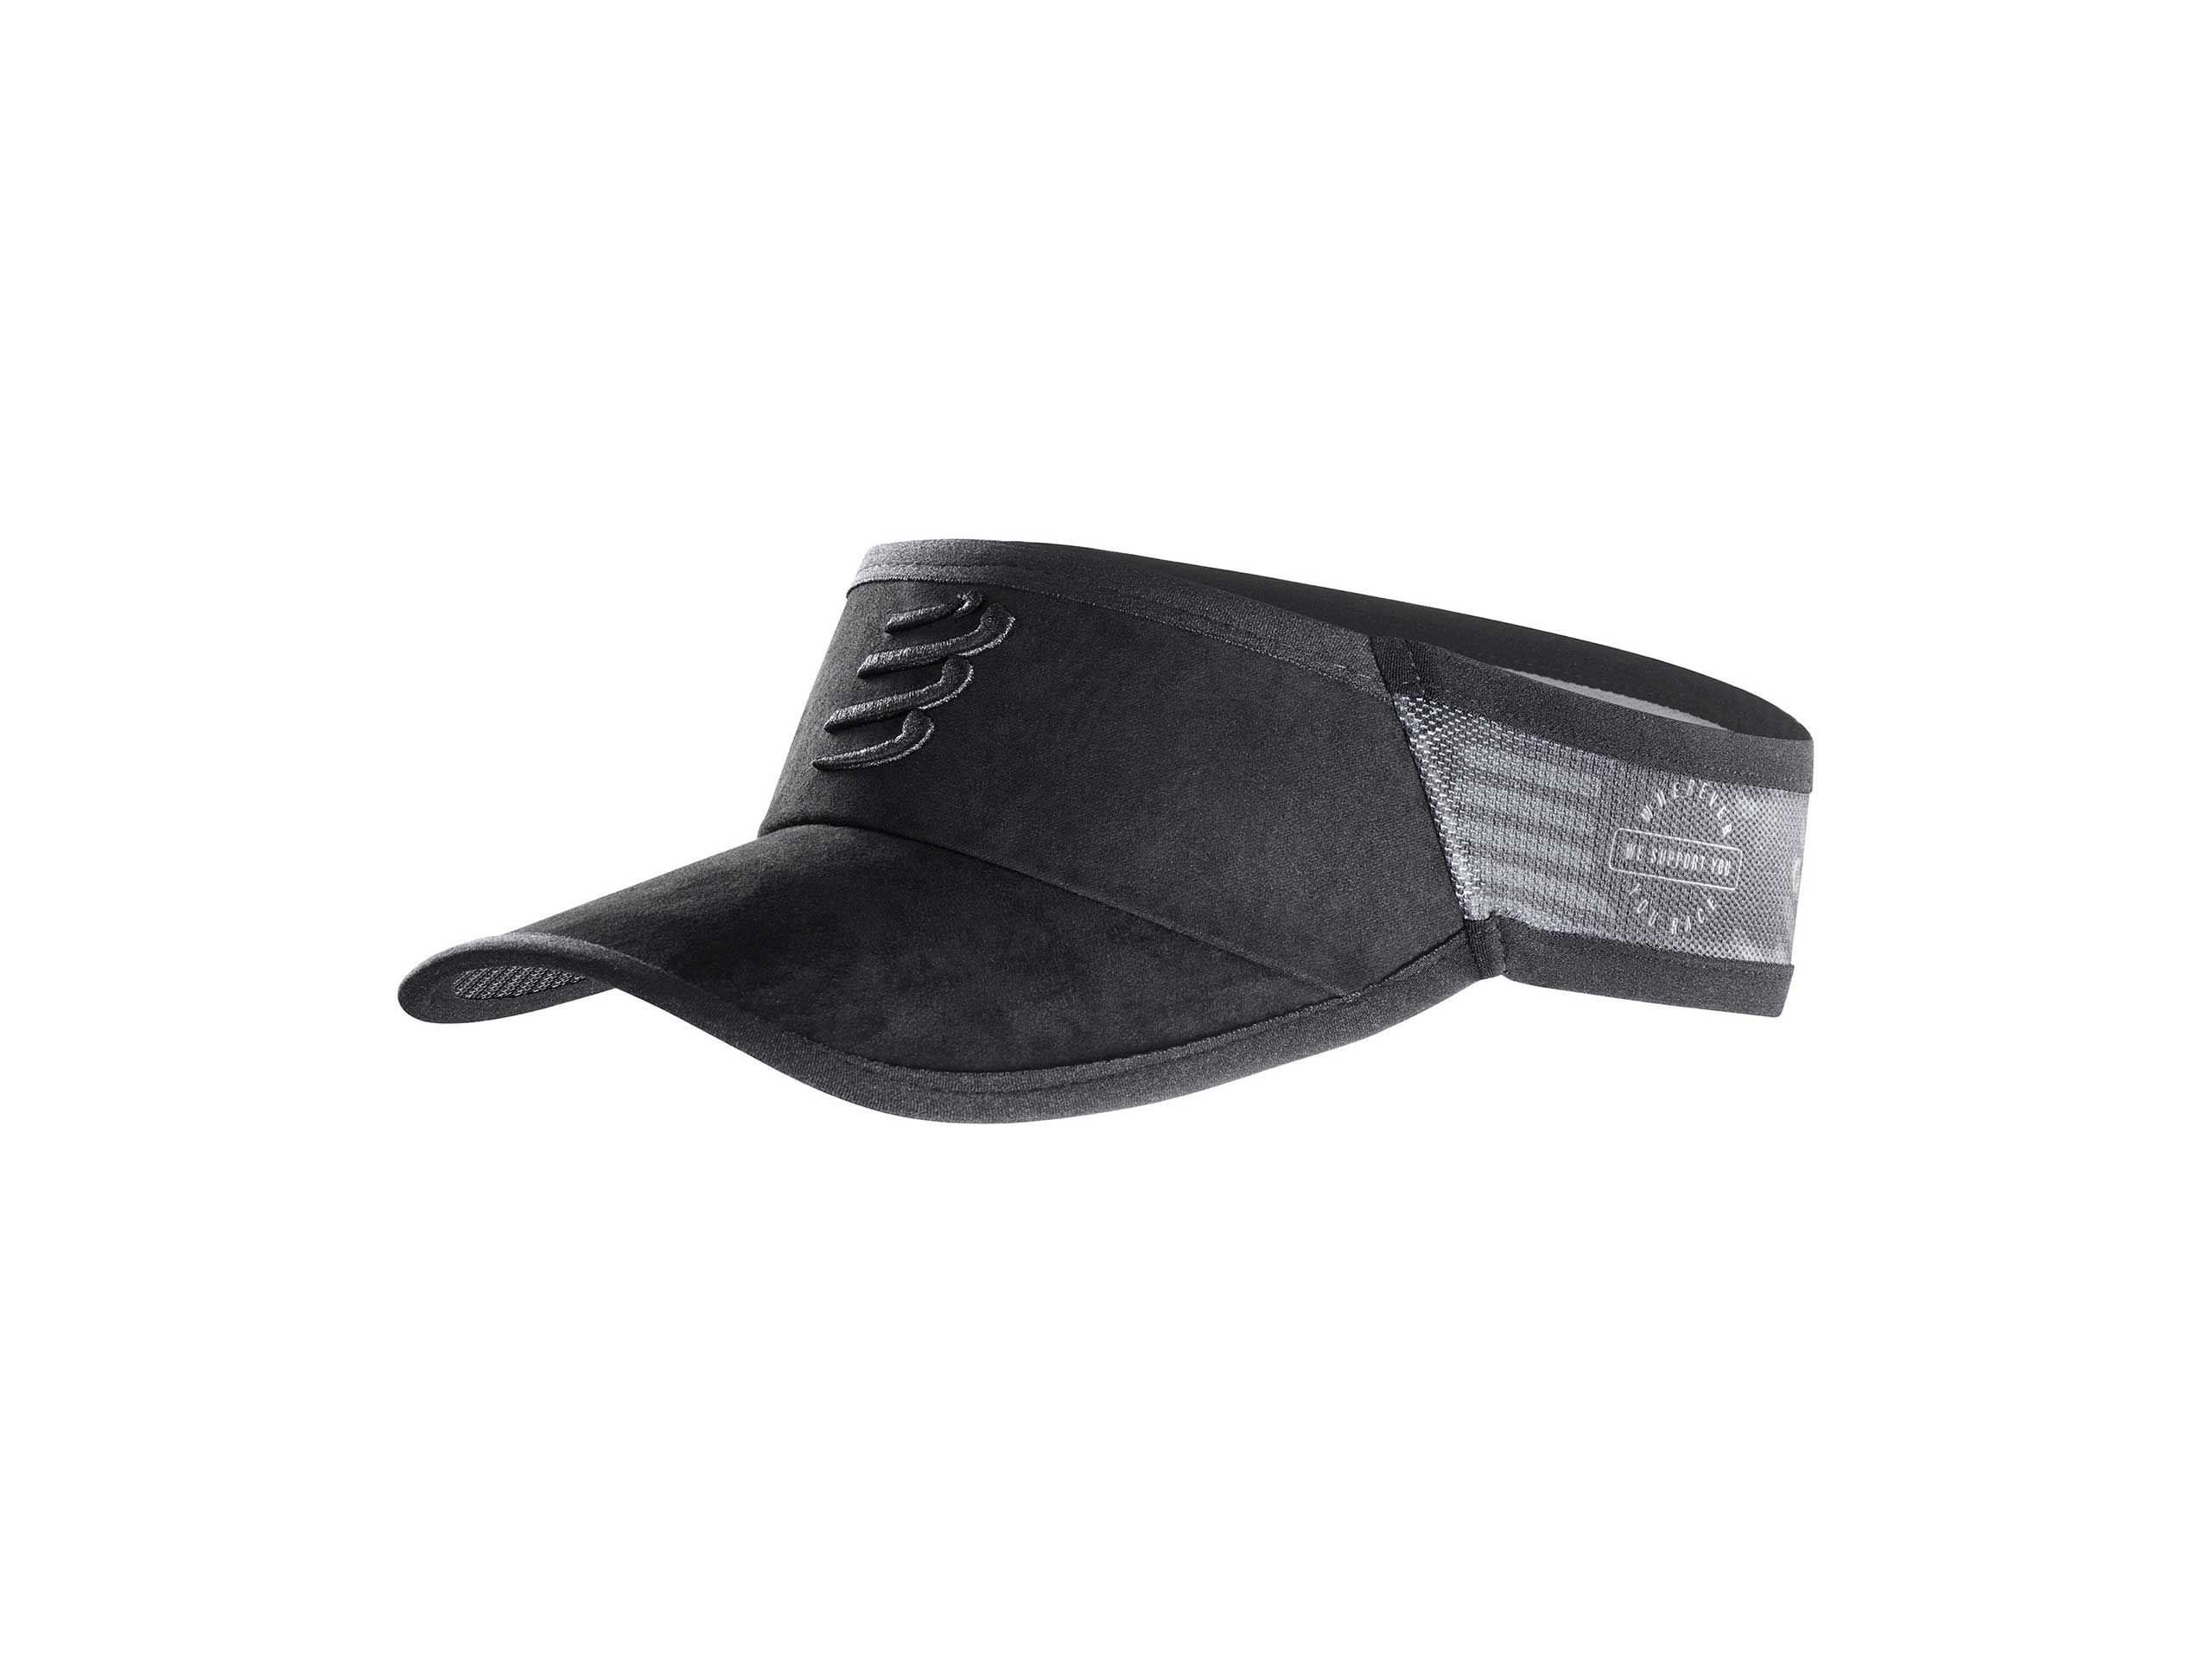 Spiderweb Ultralight Visor - Black Edition 2020